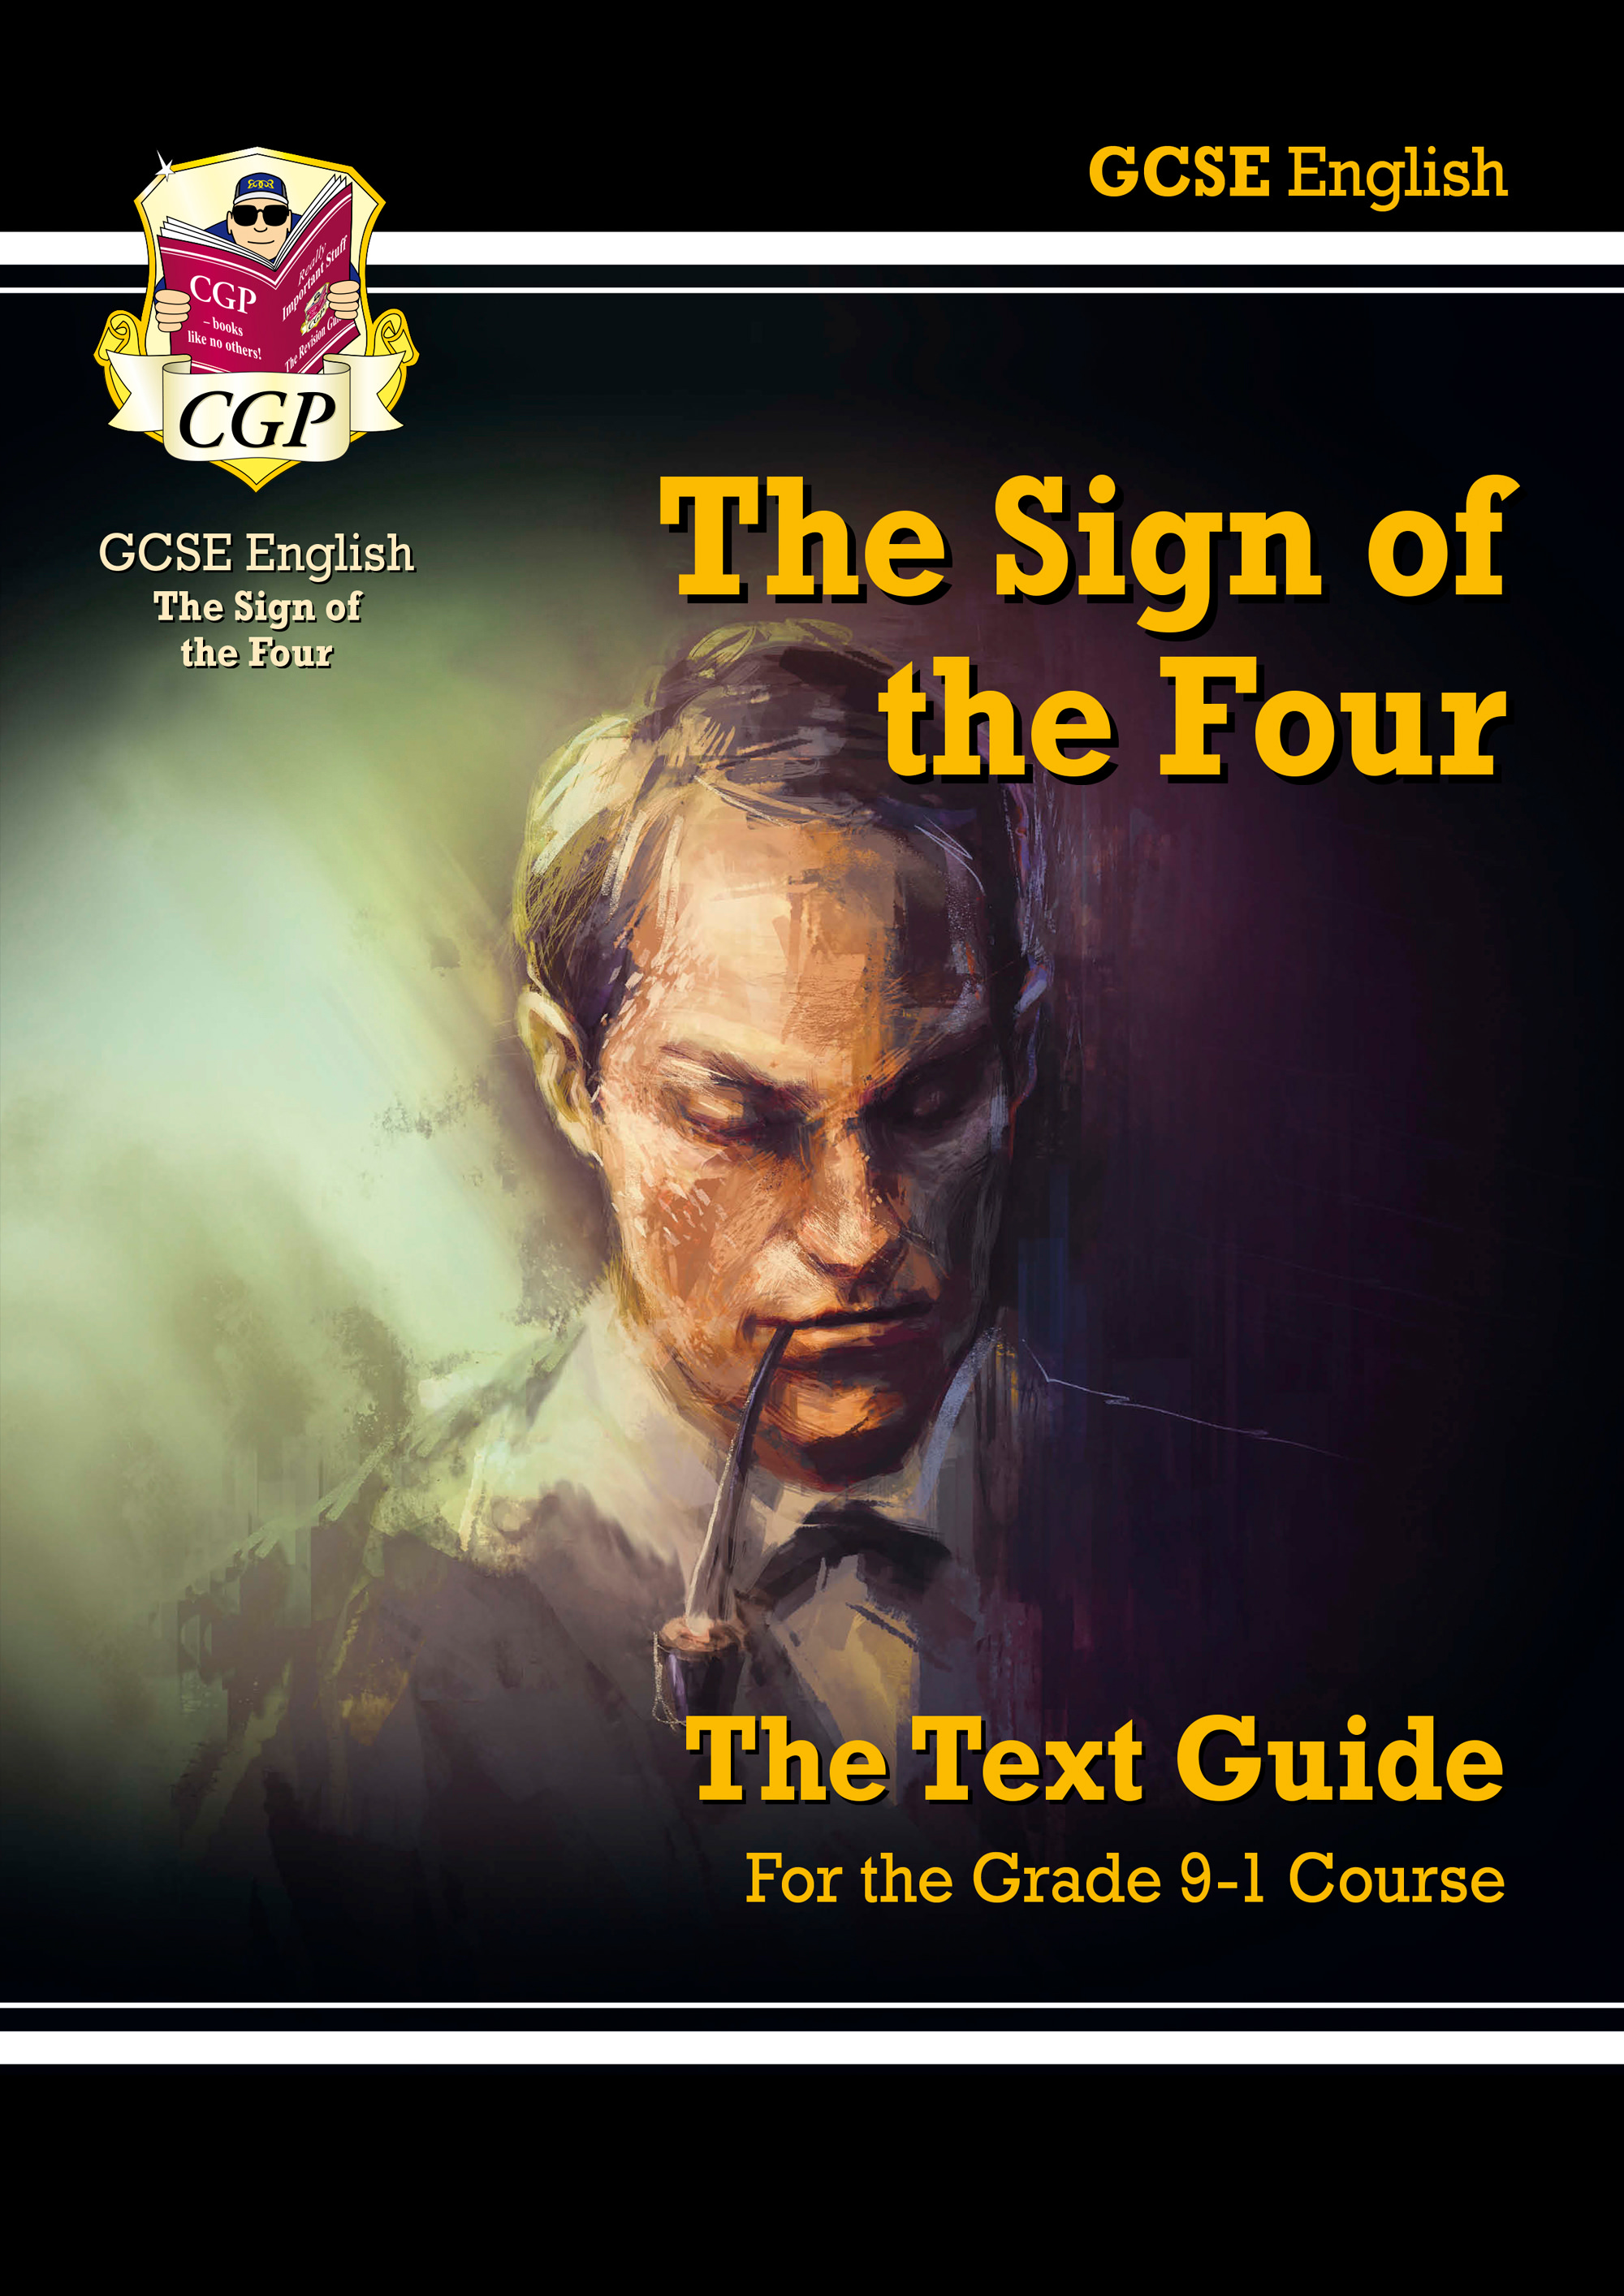 ETSF41DK - Grade 9-1 GCSE English Text Guide - The Sign of the Four